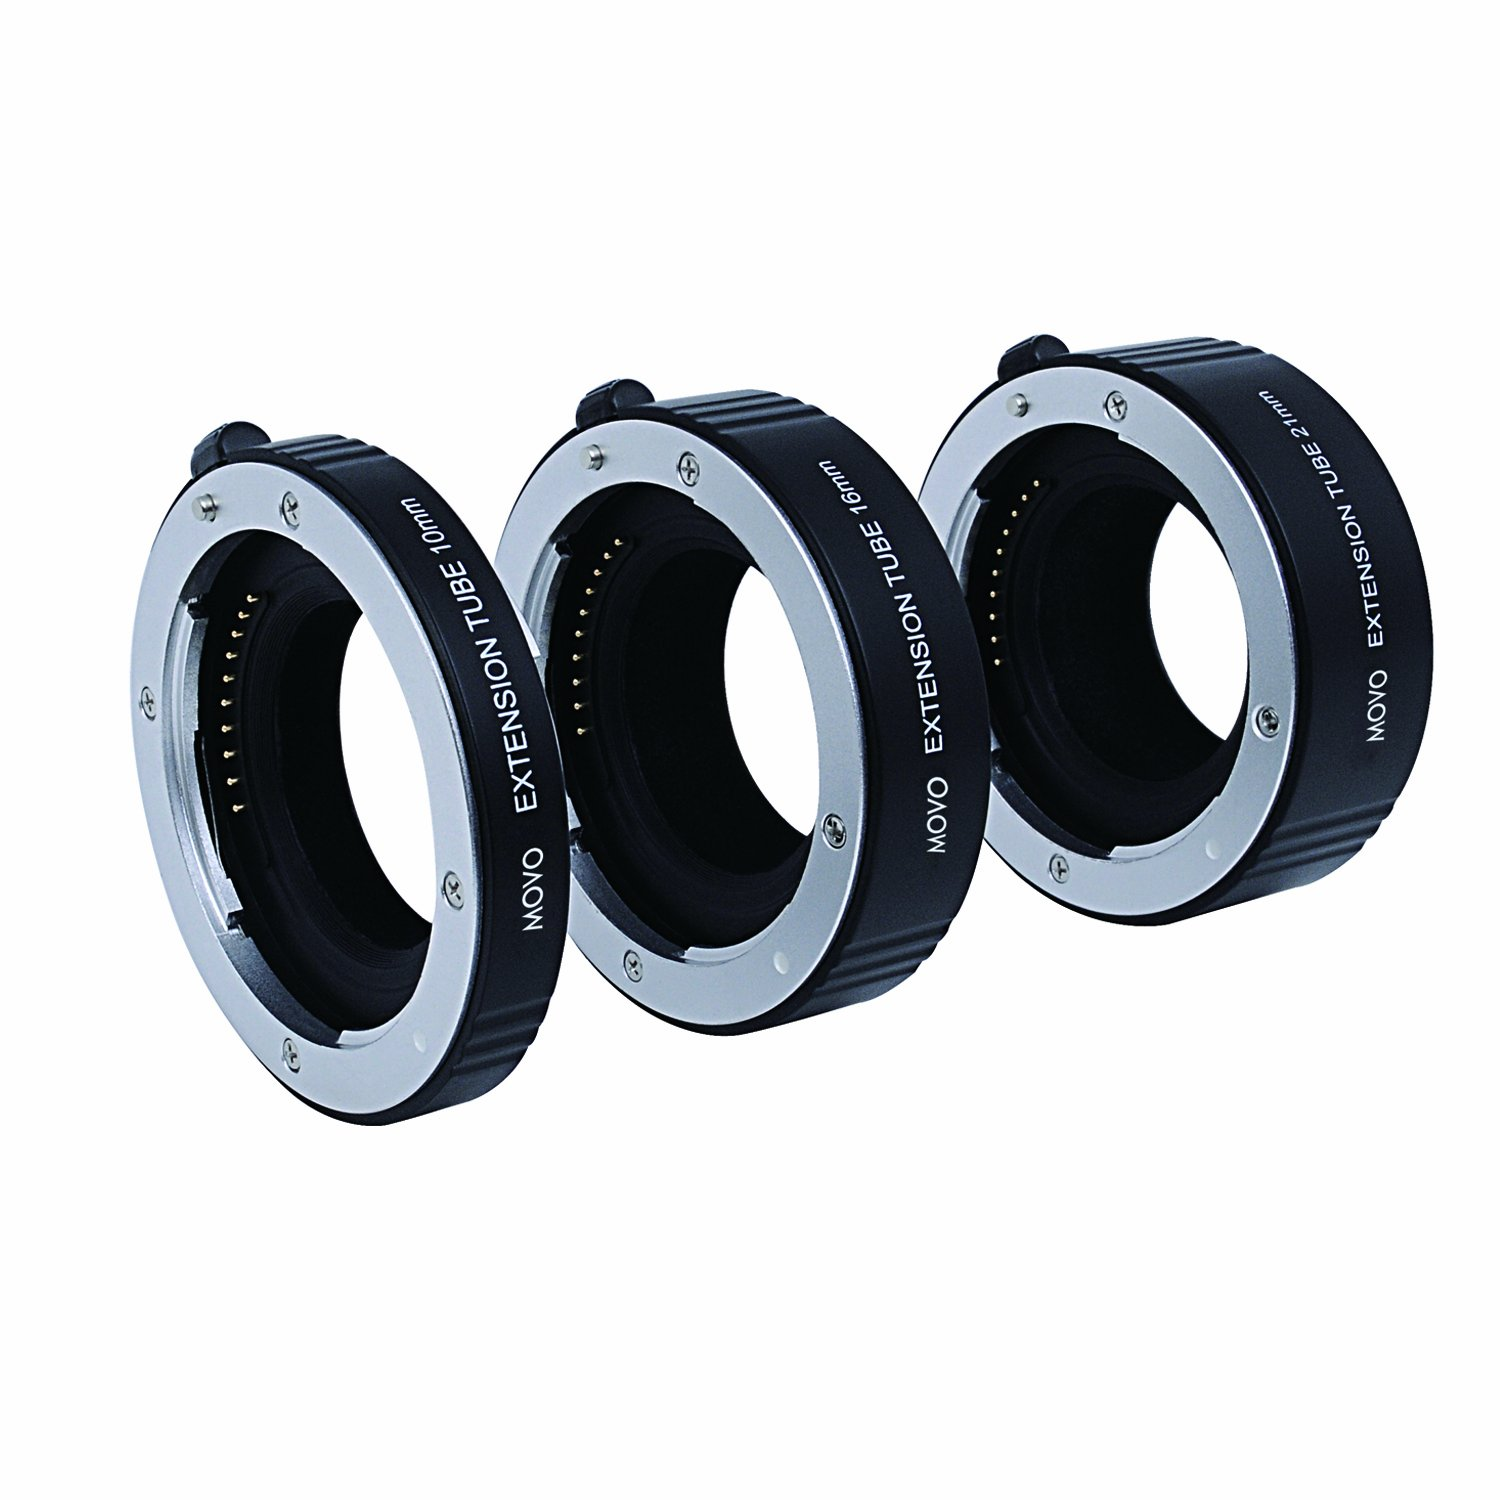 Movo Photo AF Macro Extension Tube Set for Sony E-MOUNT (NEX) Mirrorless Camera System with 10mm, 16mm & 21mm Tubes (Metal Mount)